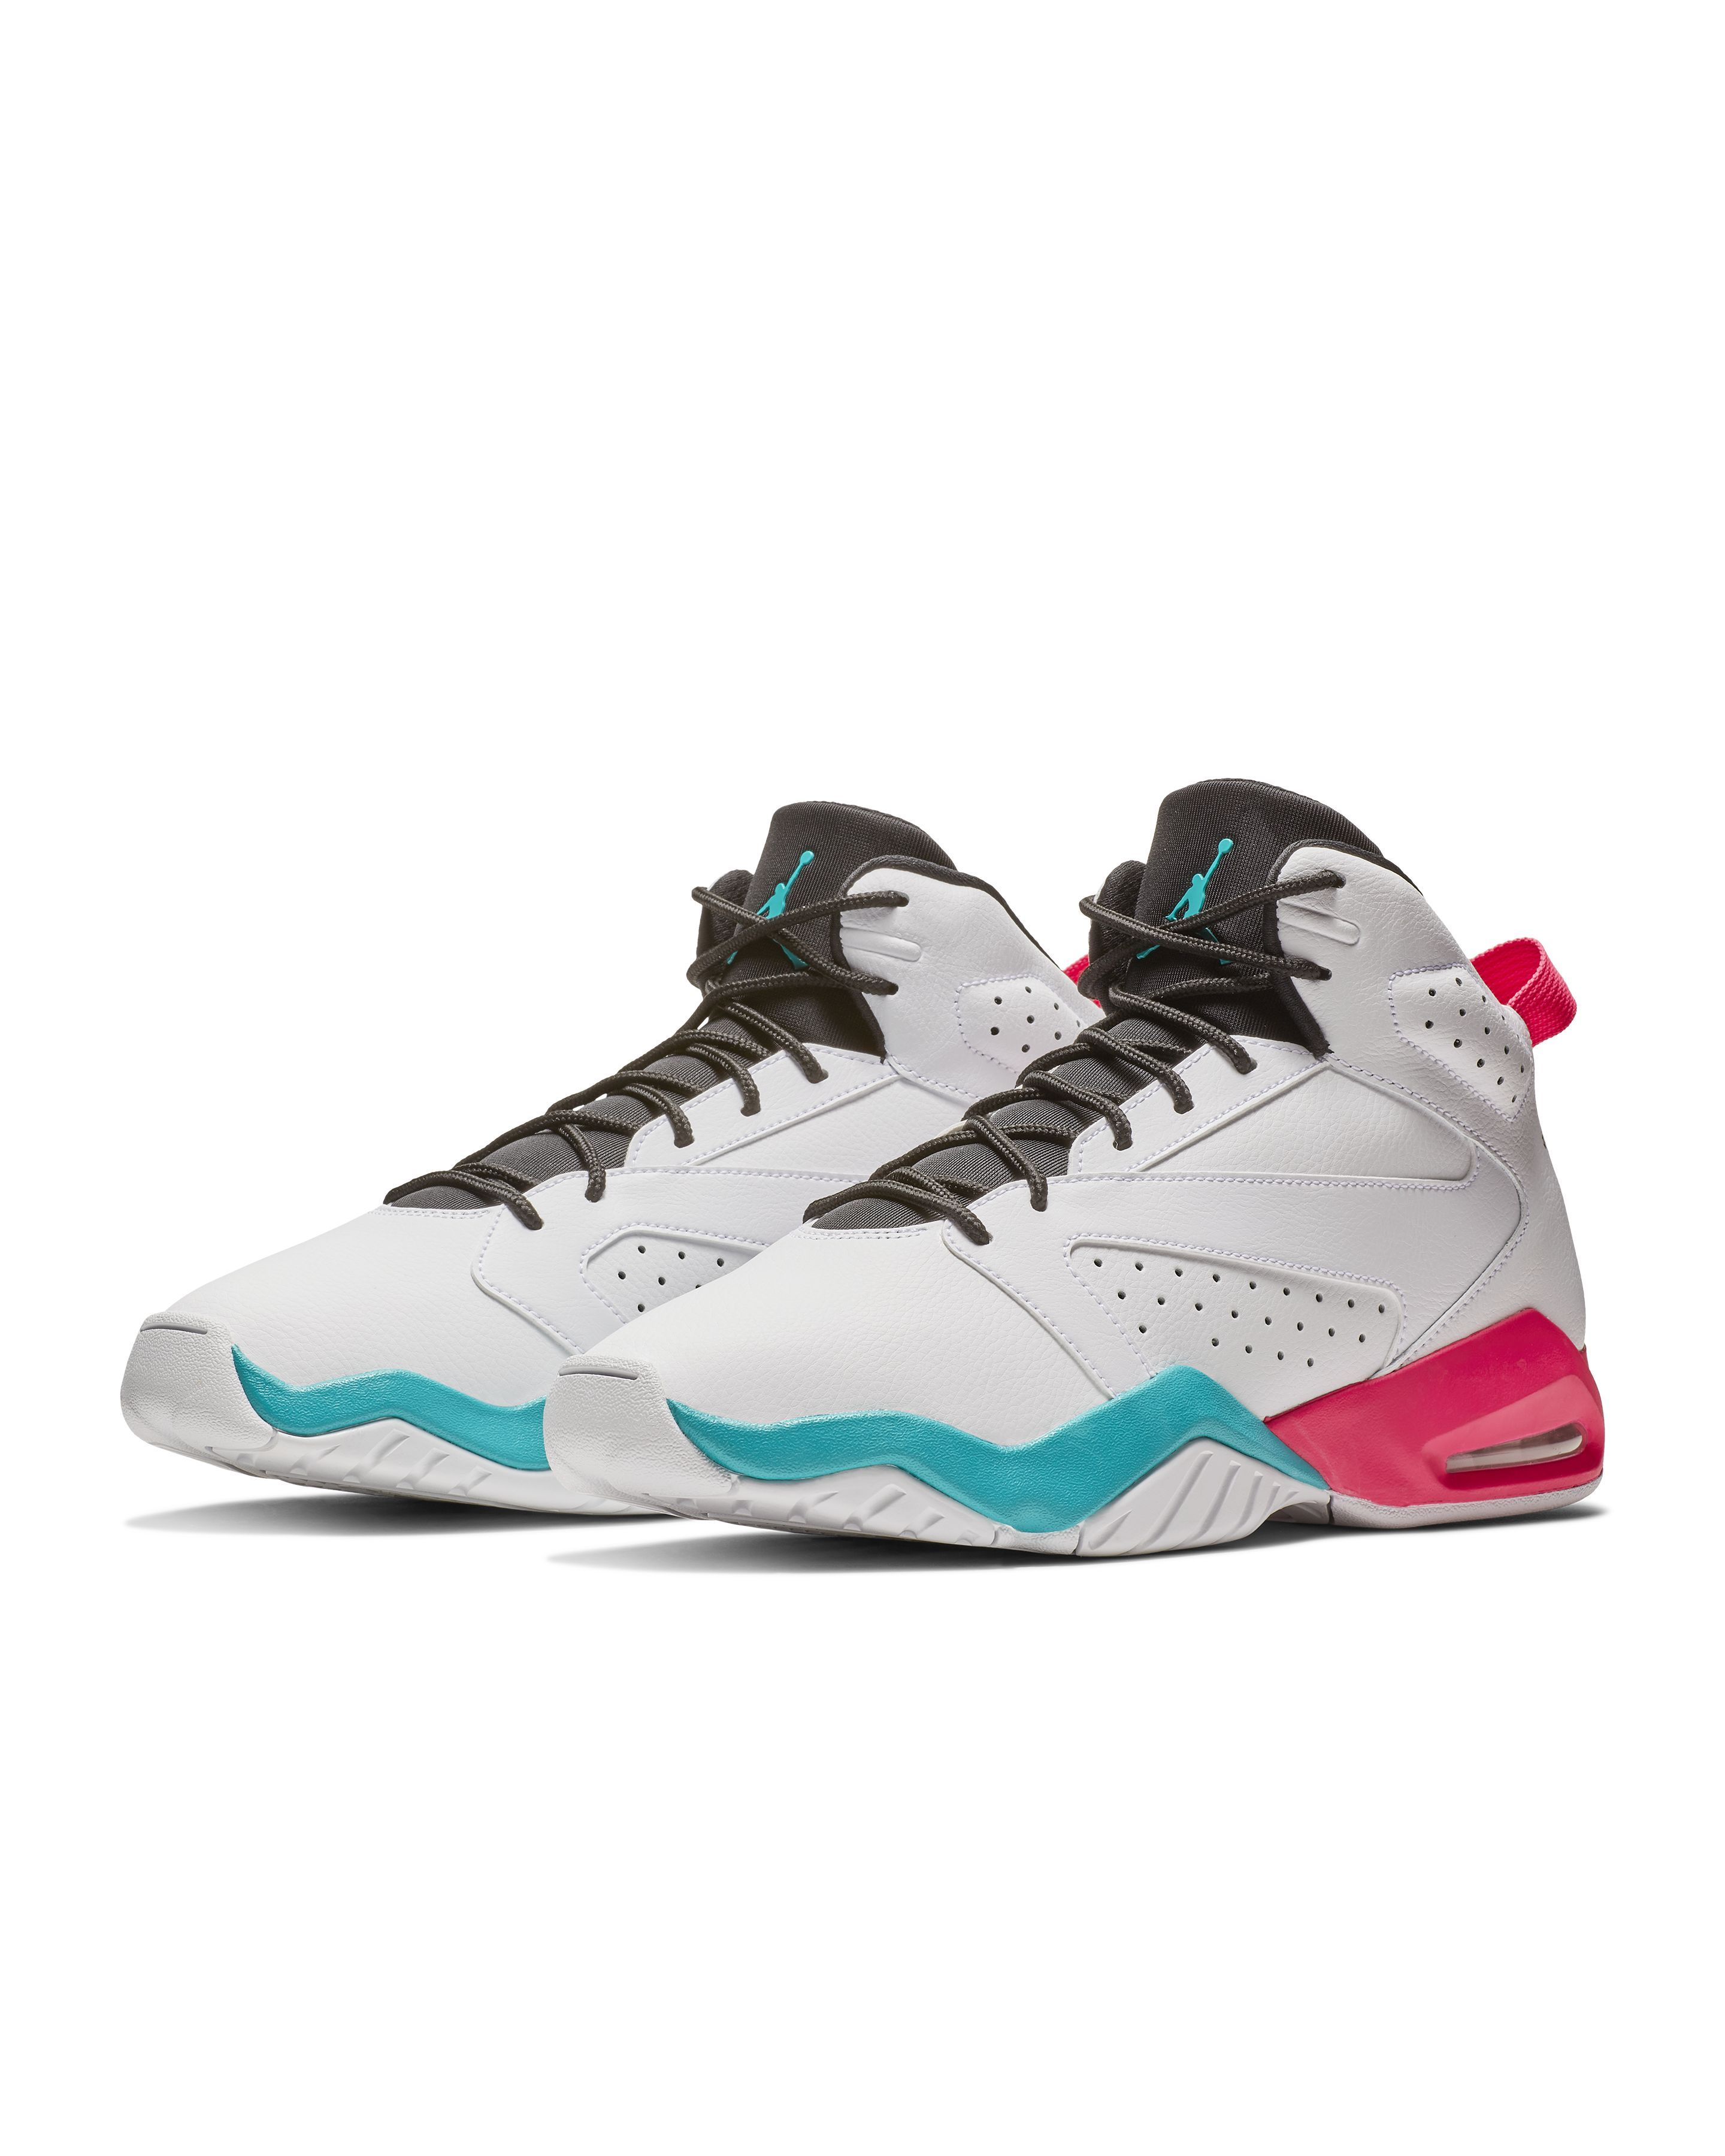 timeless design 7a397 212ae 15 Best Pairs of Basketball Shoes for Men 2019